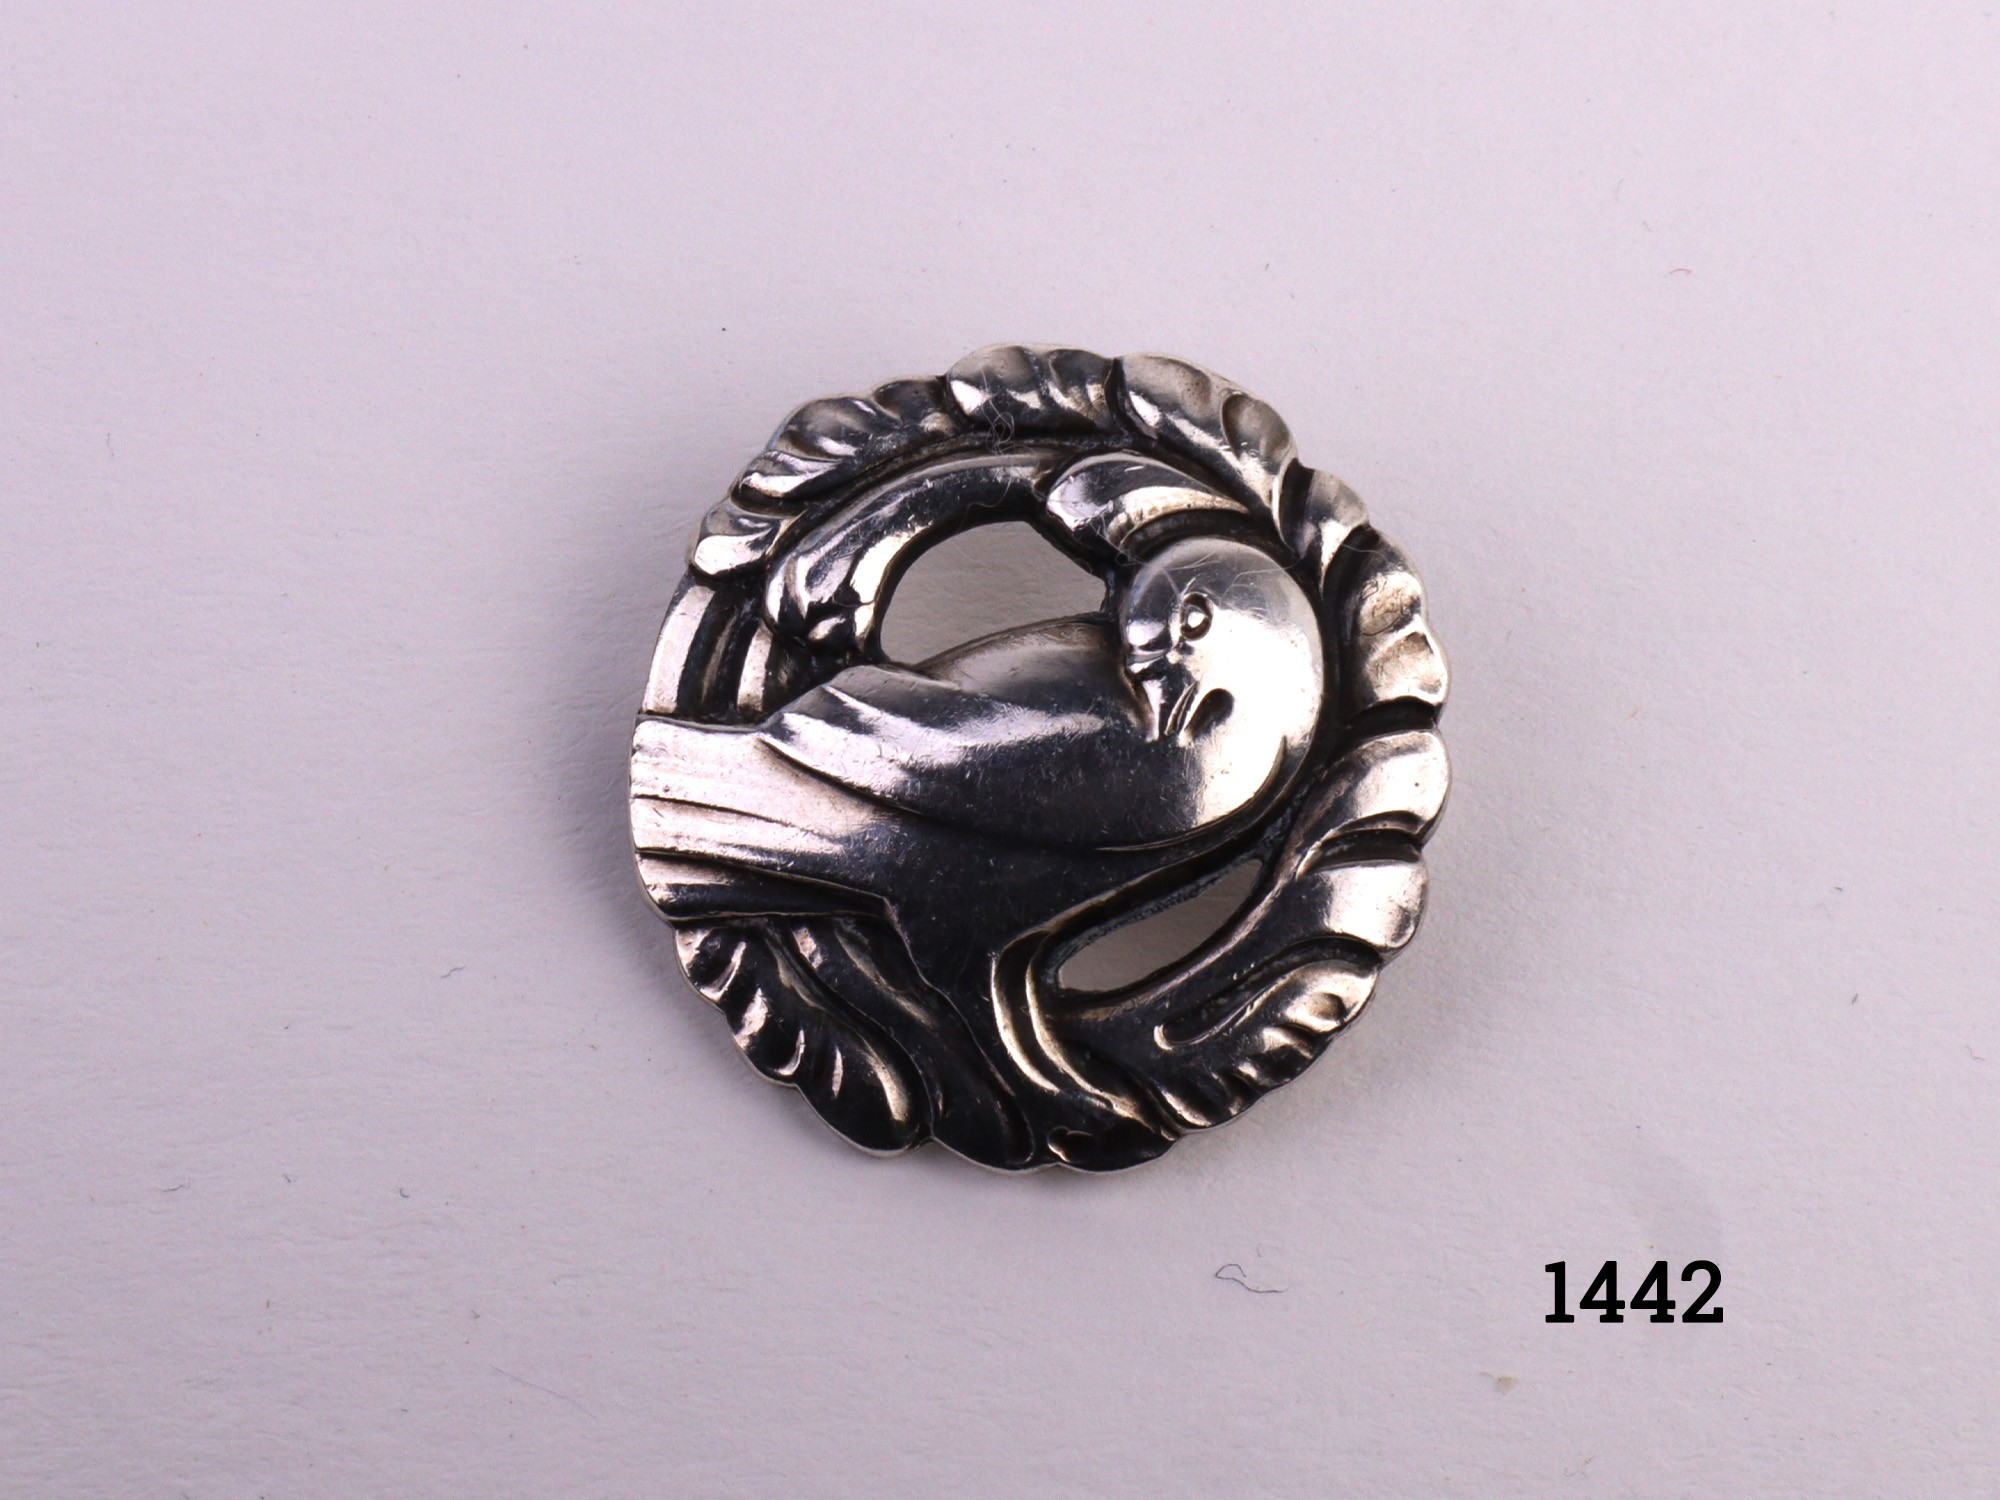 Small Georg Jensen sterling silver dove brooch. Hallmarked Sterling Denmark 191 with iconic encircled Georg Jensen mark. Measures 25mm in diameter and weighs 4.5 grammes Main photo of brooch front with dove